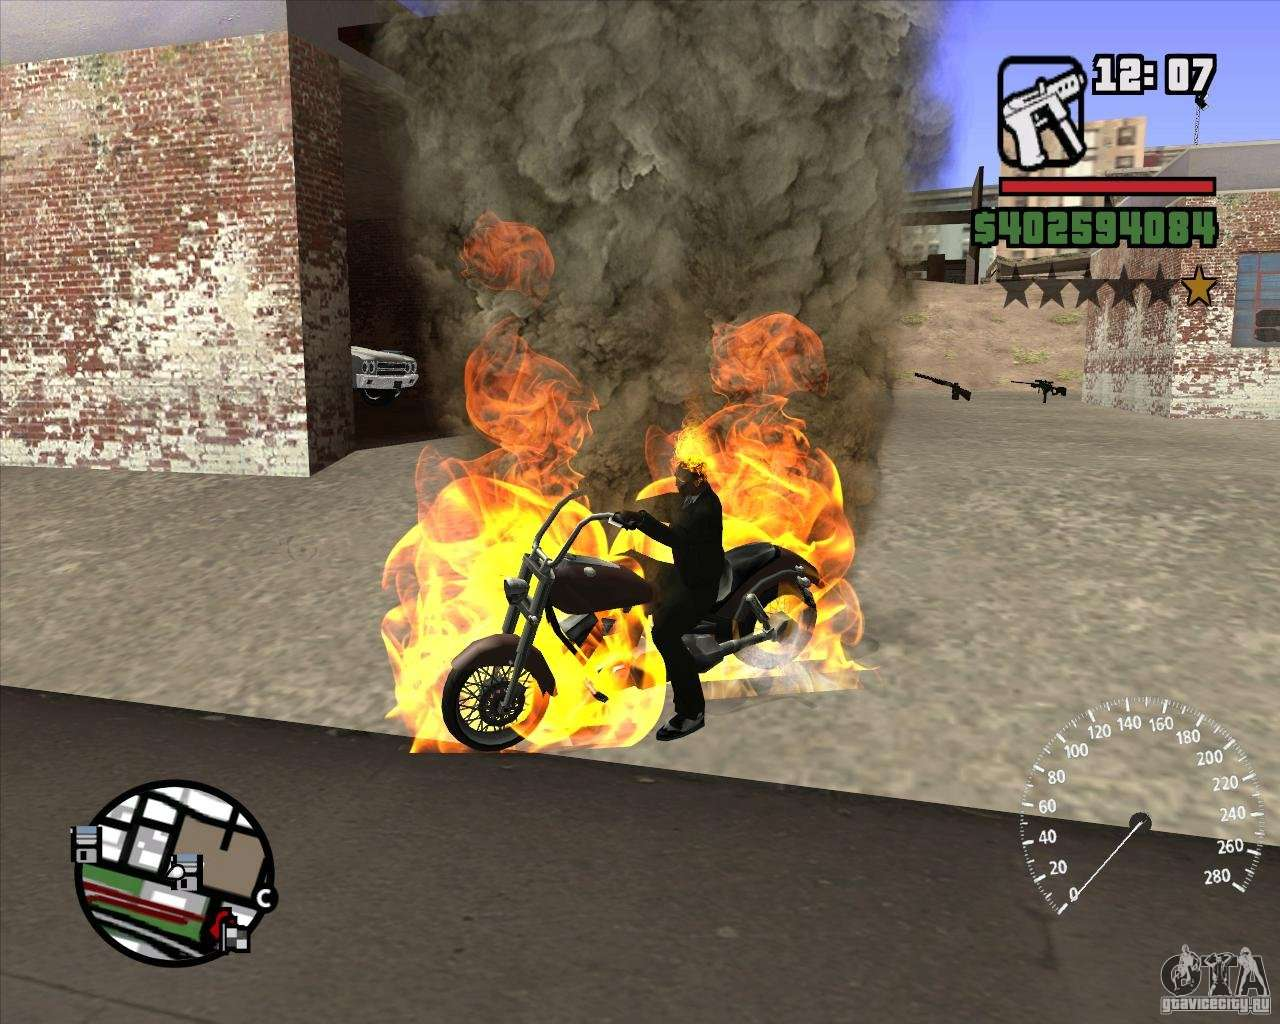 download ghost rider 2 pc game highly compressed